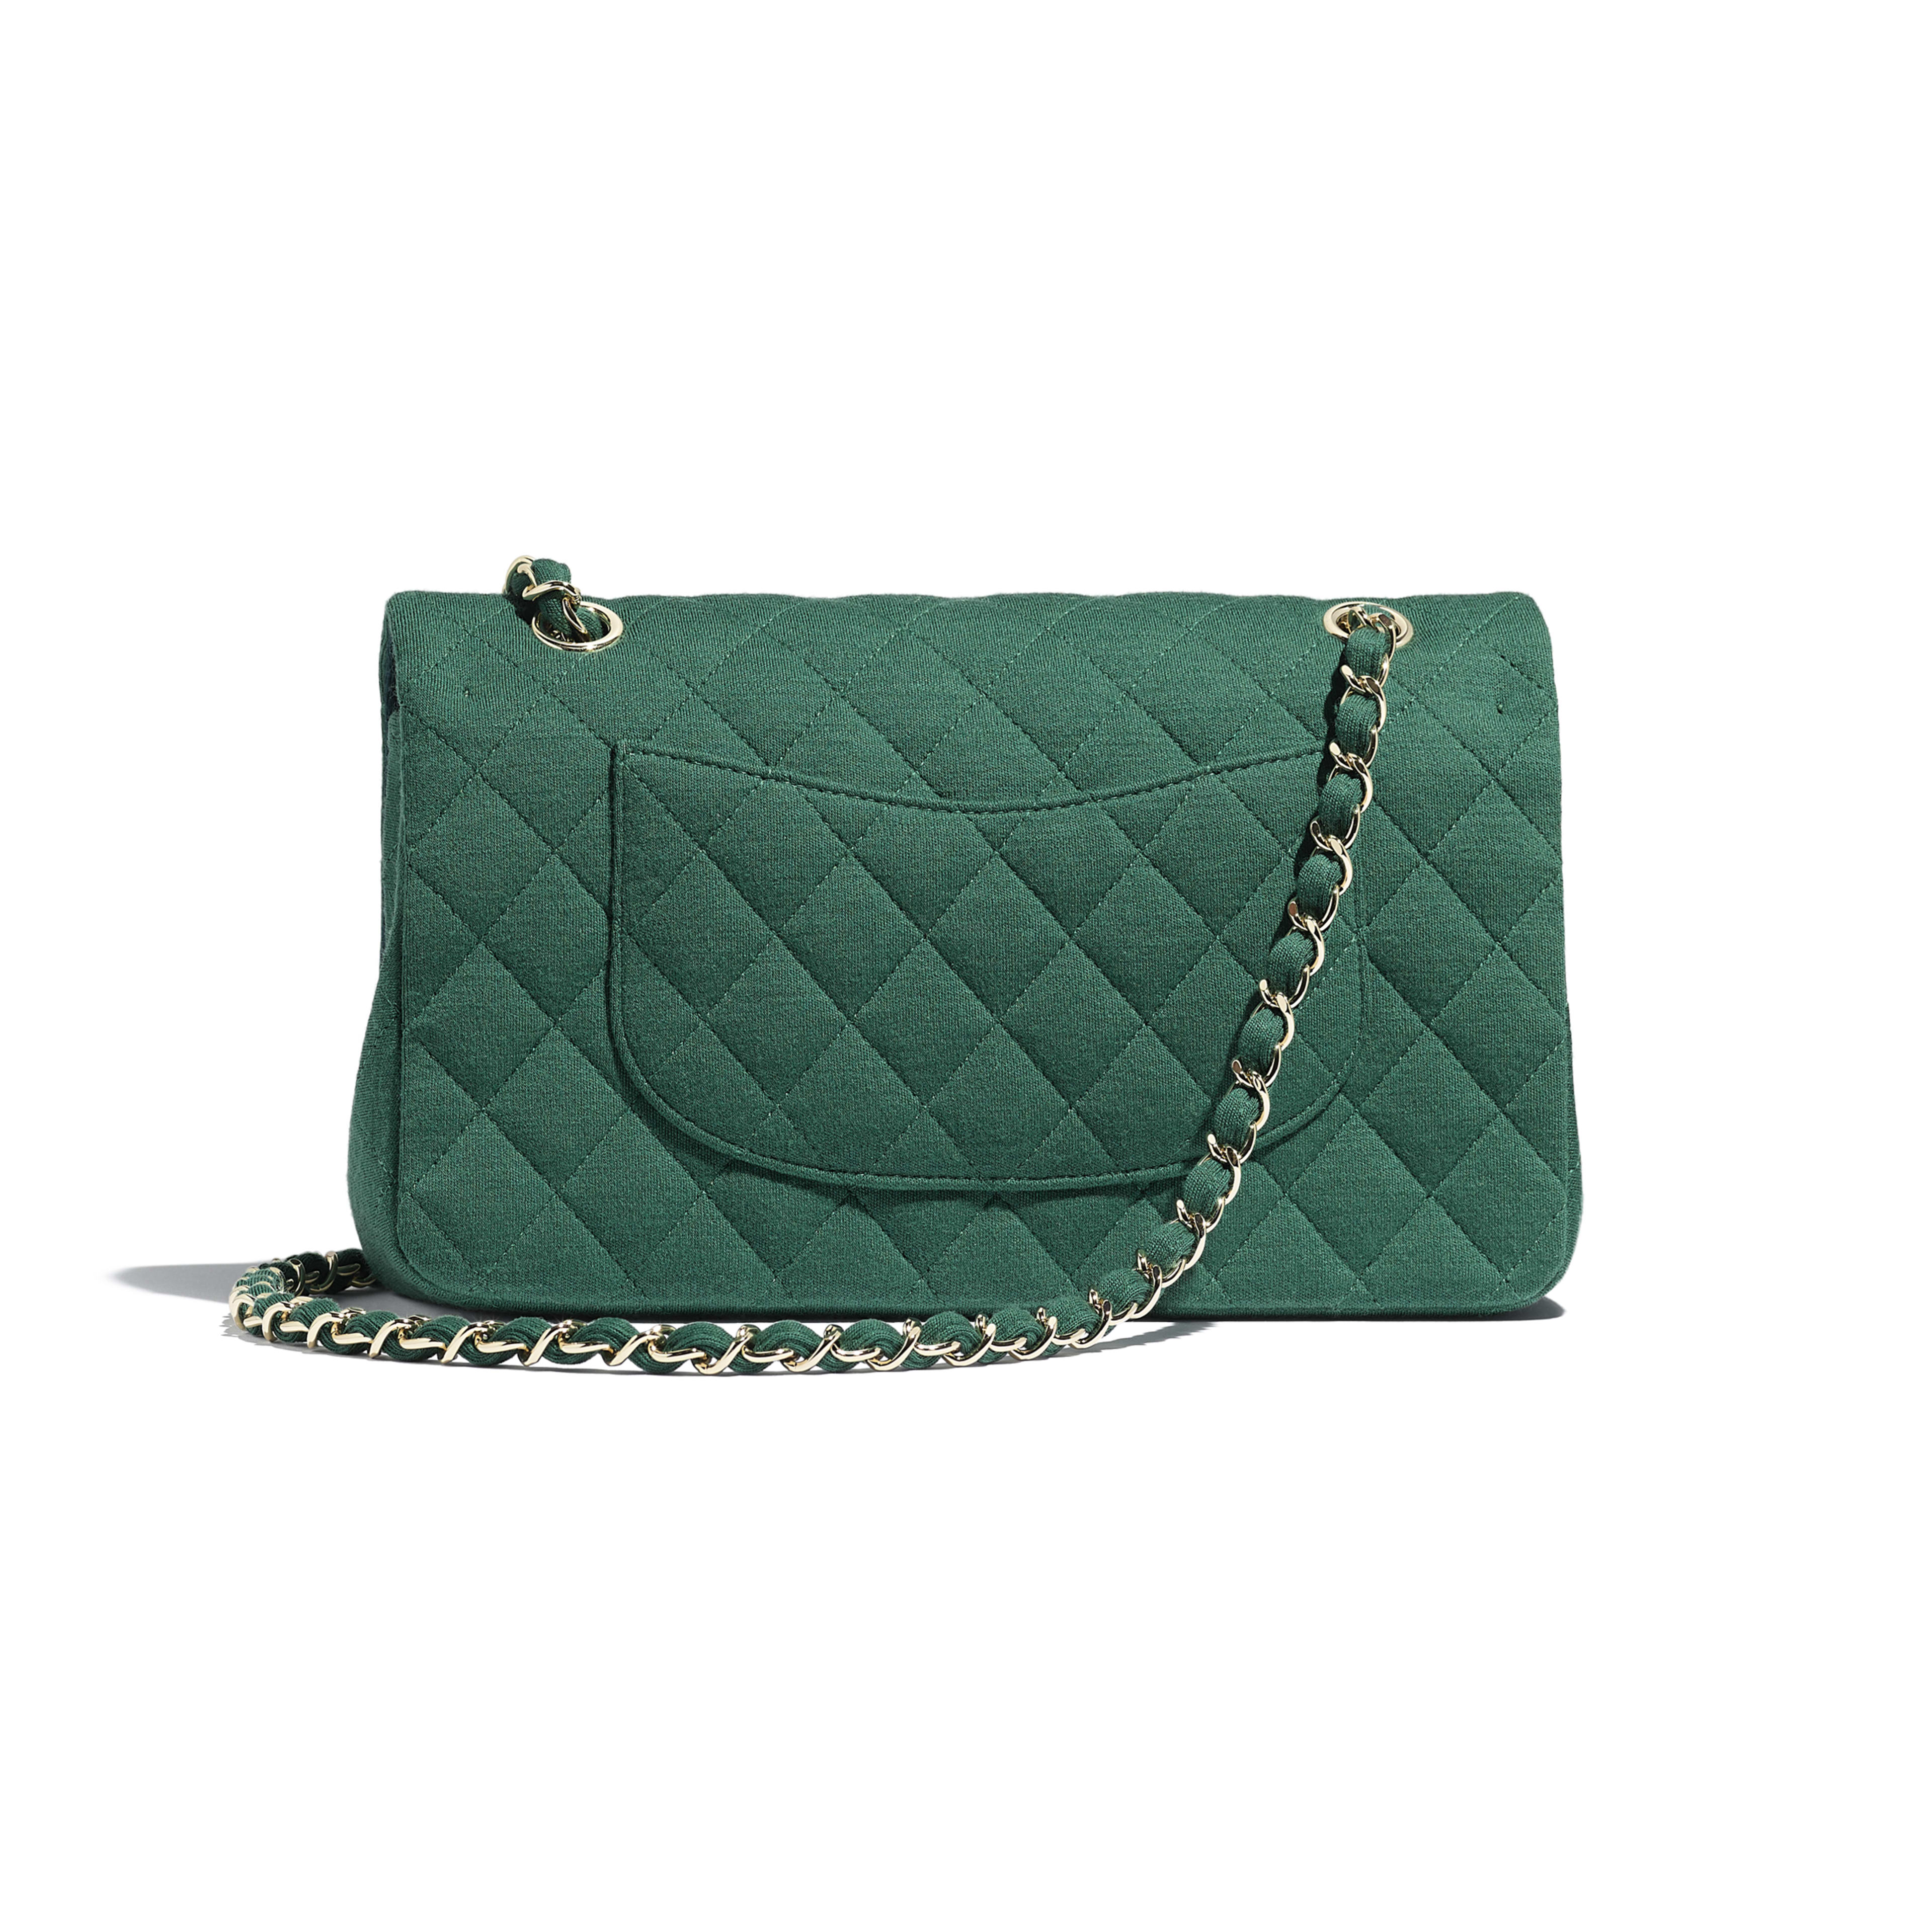 Classic Handbag - Green - Jersey & Gold-Tone Metal - Alternative view - see full sized version